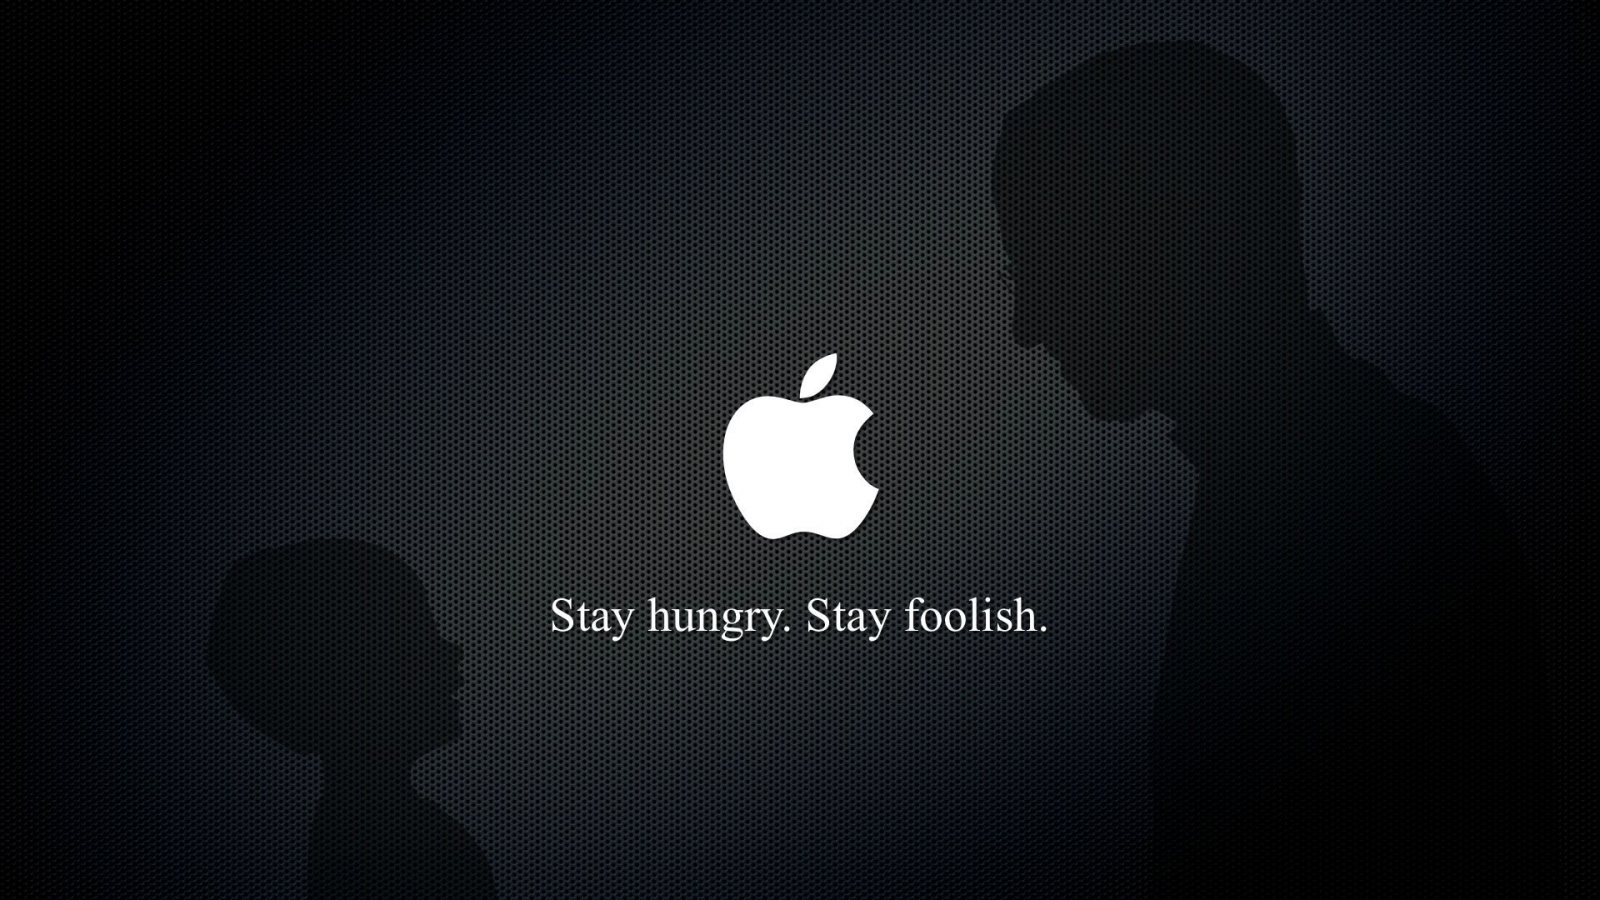 Steve Jobs Quotes Wallpaper Quotesgram